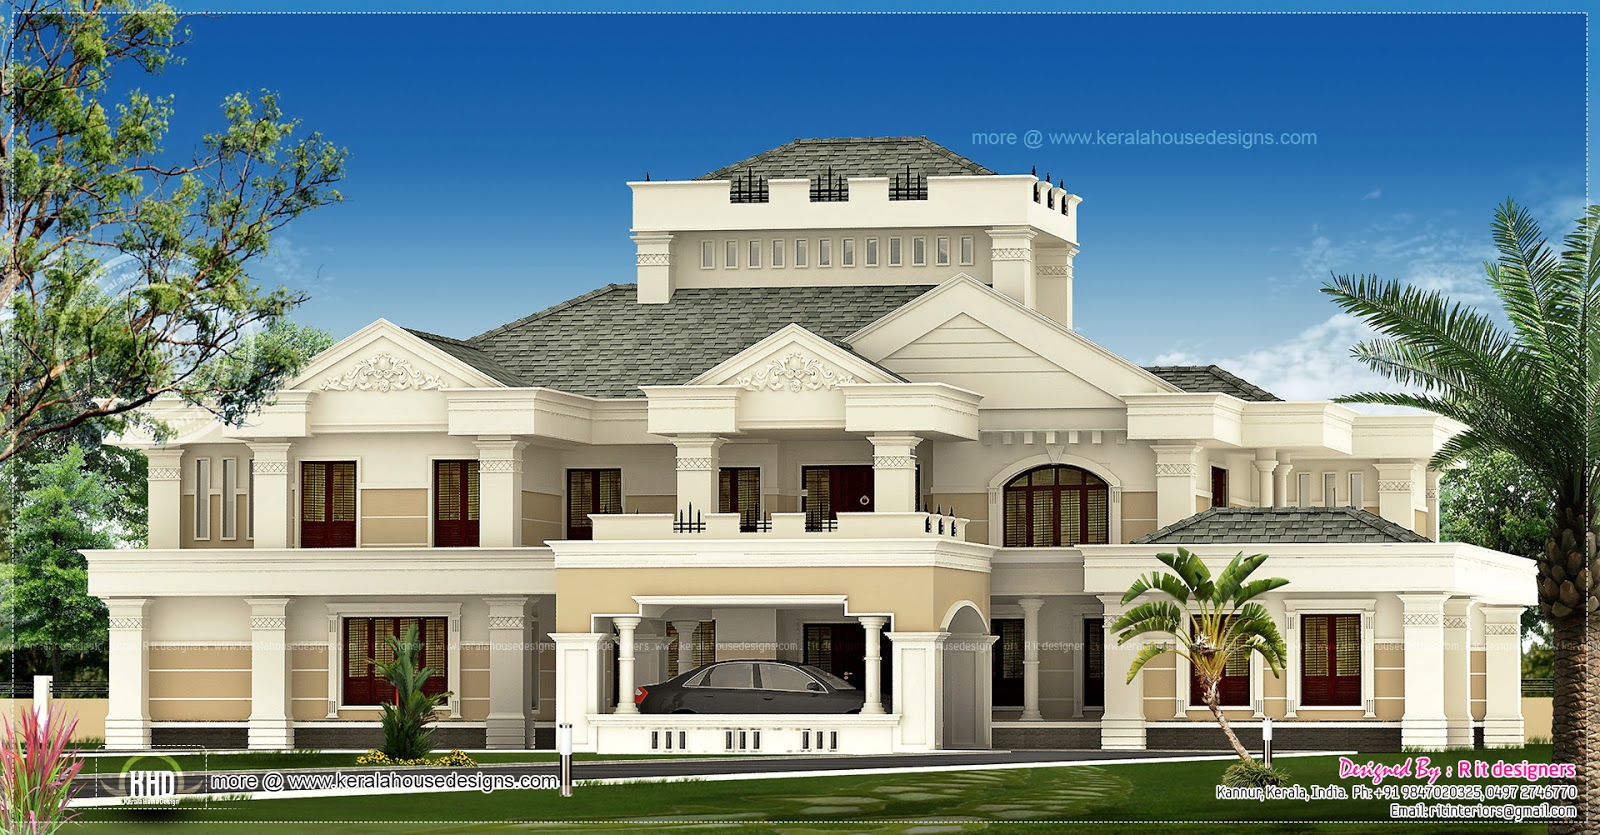 Super luxury kerala house exterior house design plans for Luxury home plans with photos